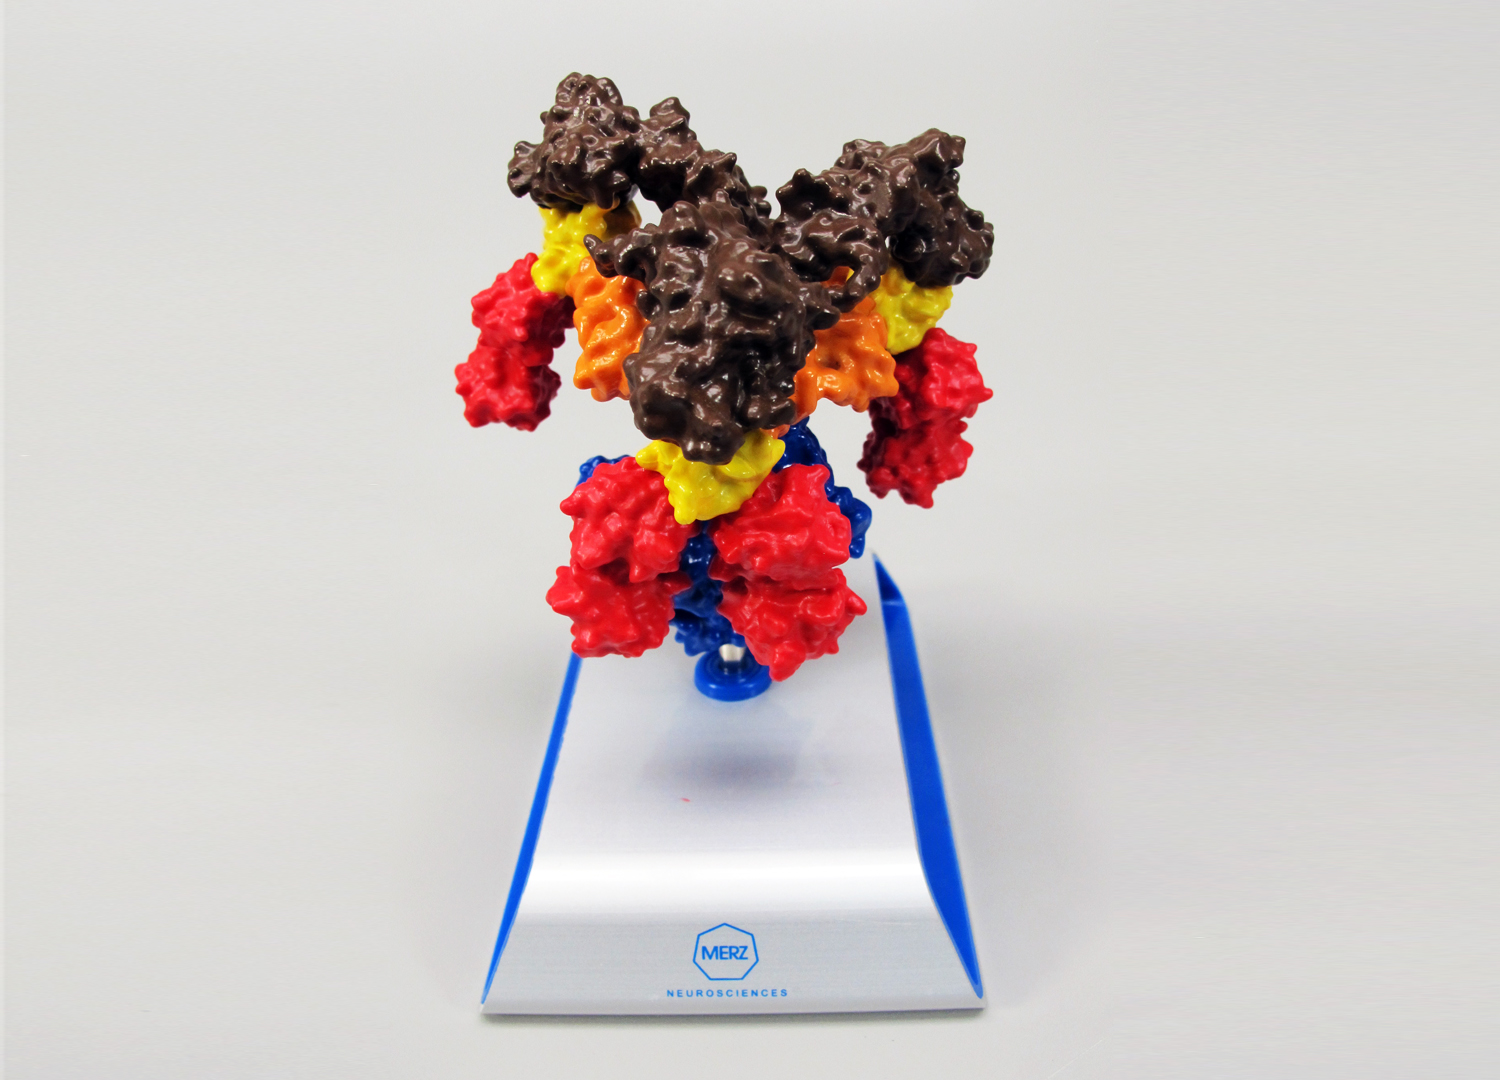 Molecular Structure Models - Molecular structures come to life with a 3d print. Print your drug compound and make a mainstay for a desk with your logo on it.